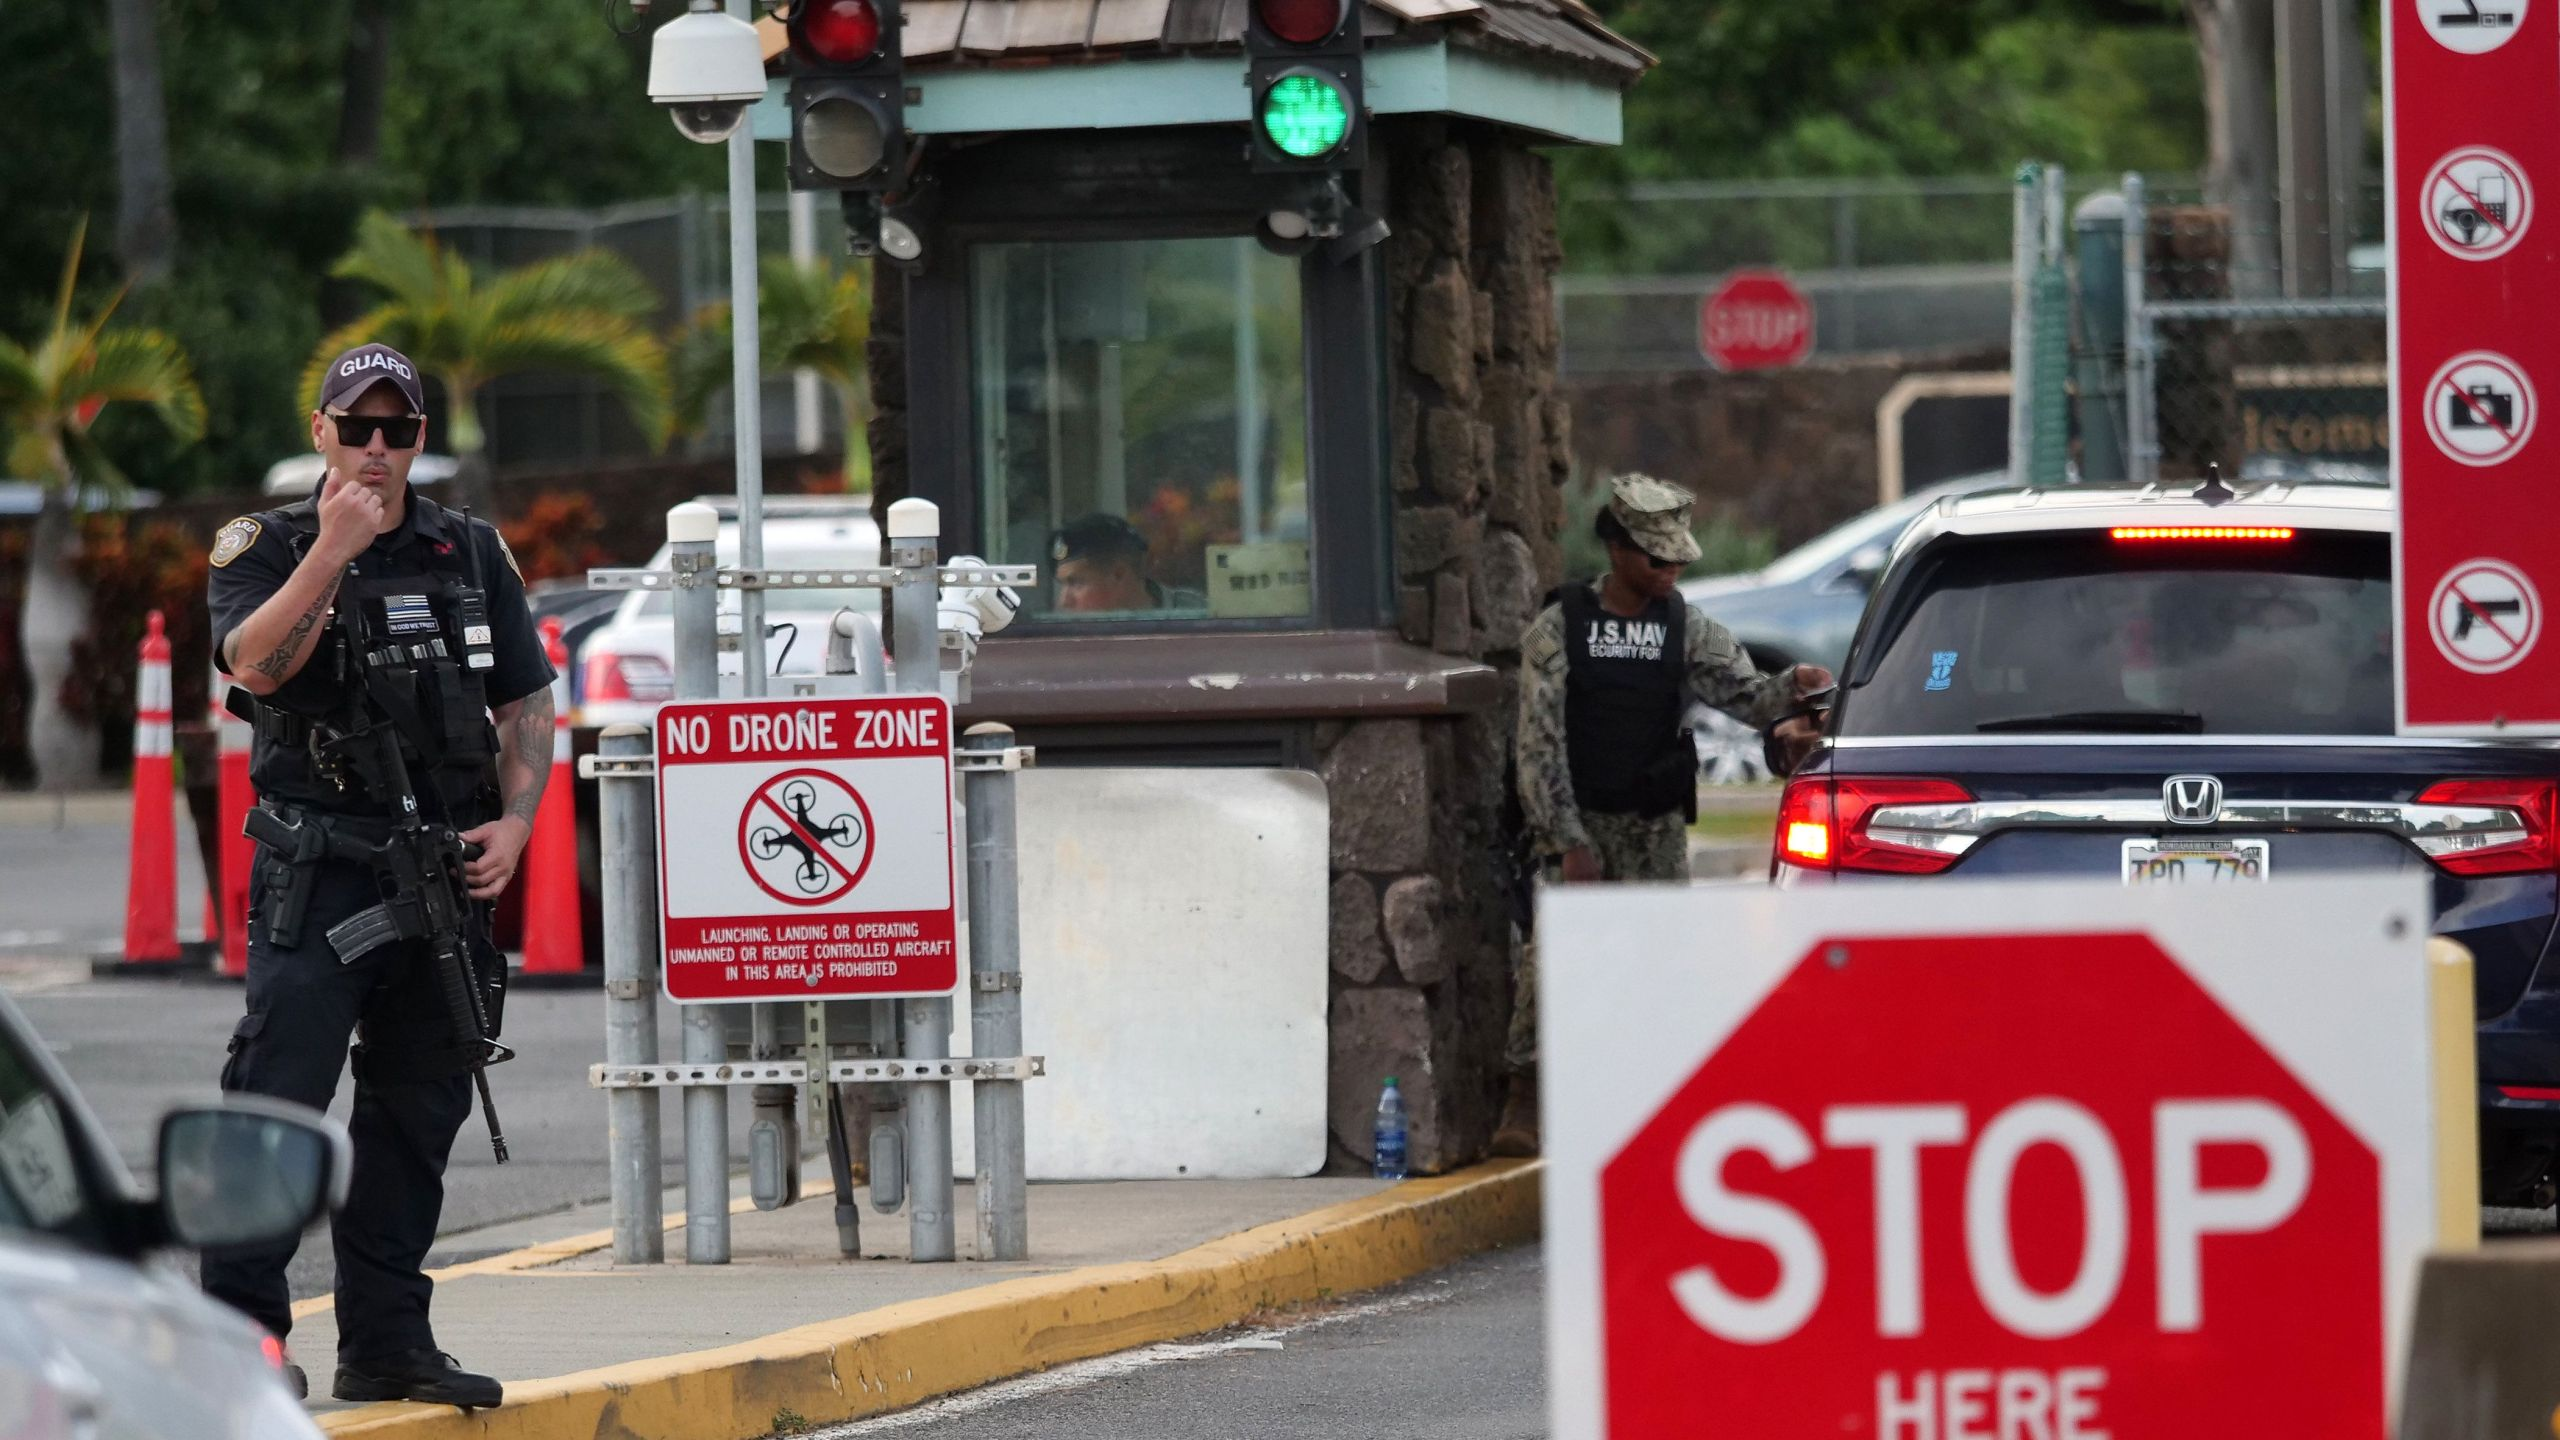 The Nimitz Gate at Pearl Harbor in Hawaii is seen shortly after a sailor opened fire at the Pearl Harbor Naval Shipyard in Honolulu, Hawaii on Dec. 4, 2019. (Credit: RONEN ZILBERMAN/AFP via Getty Images)